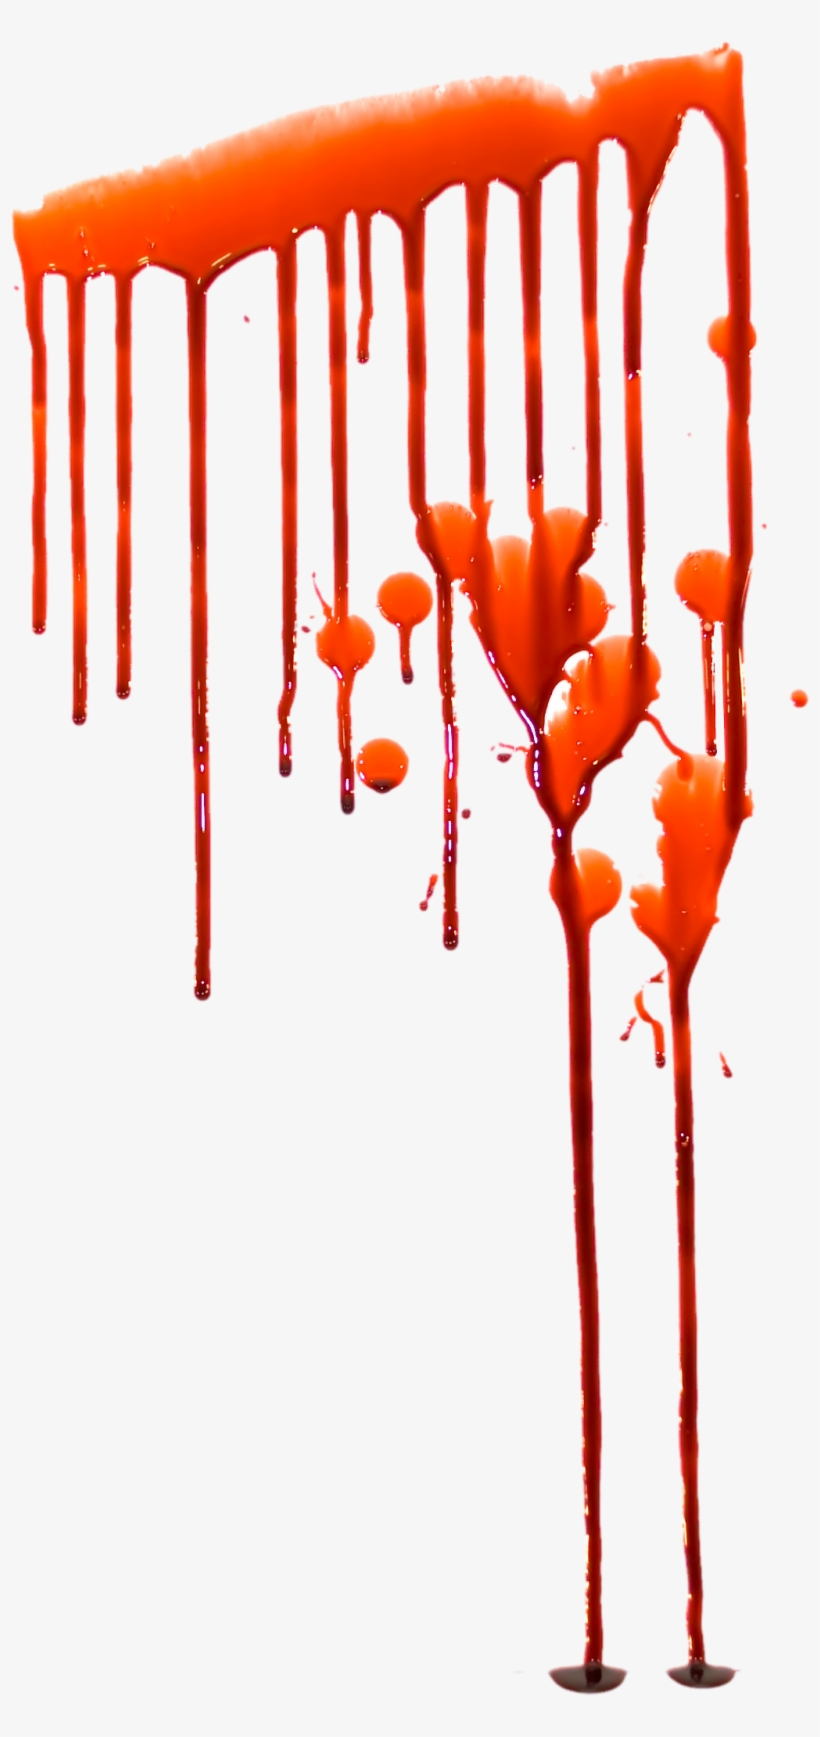 hight resolution of pictures of dripping blood png download portable network graphics